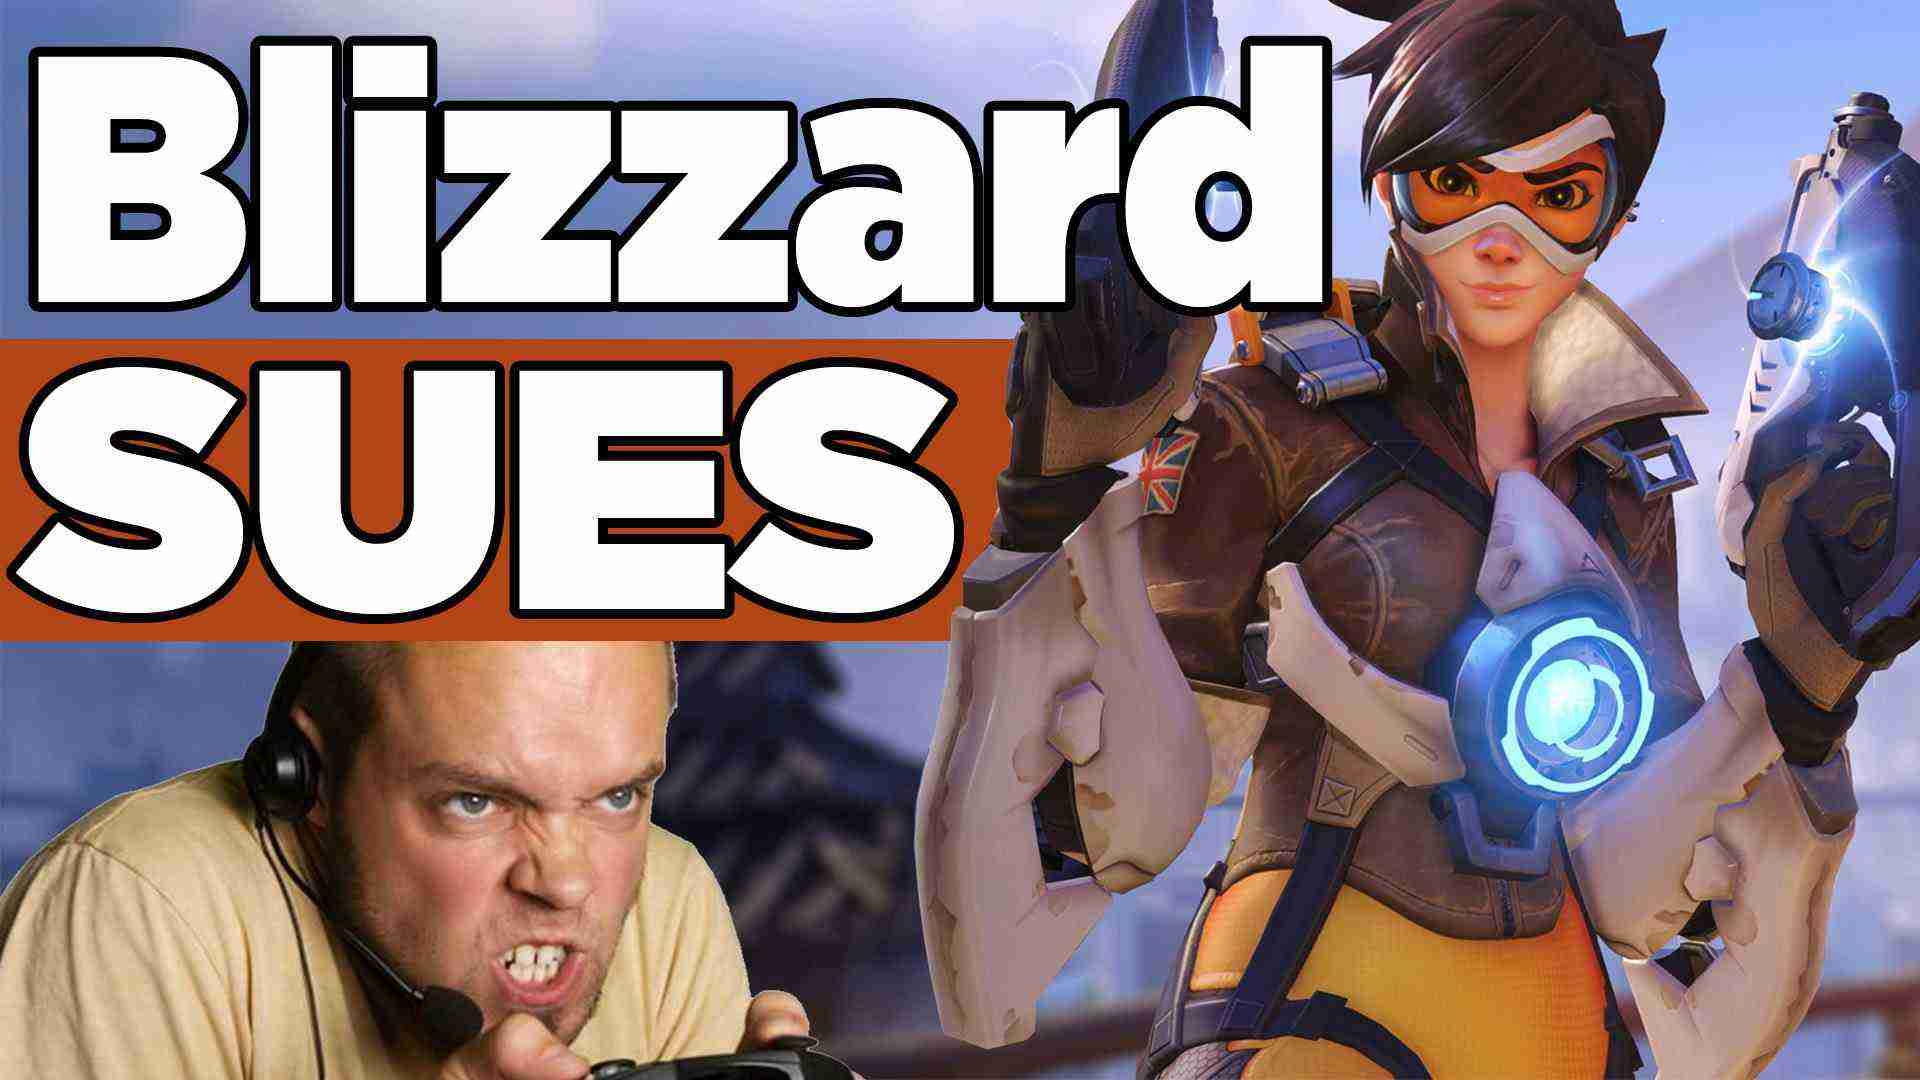 Blizzard SUES Overwatch Cheat Maker – Inside Gaming Daily